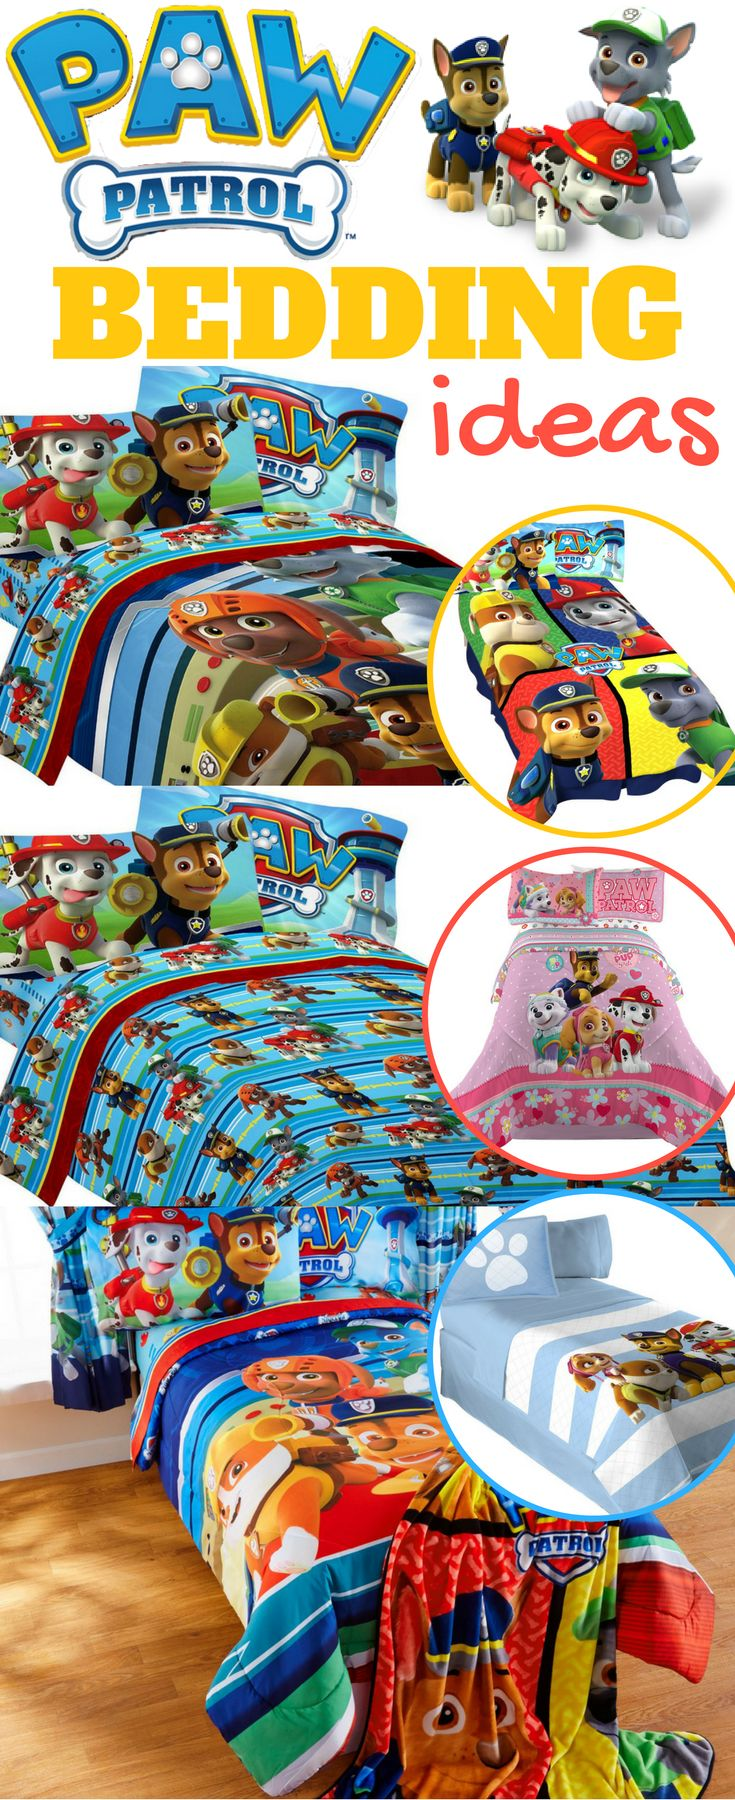 Kids Room Ideas + Theme Bedrooms + Kids Bedding + Apartment Therapy for Small Rooms = Paw Patrol Bedding, Pillows and Blankets from $20 @ Walmart